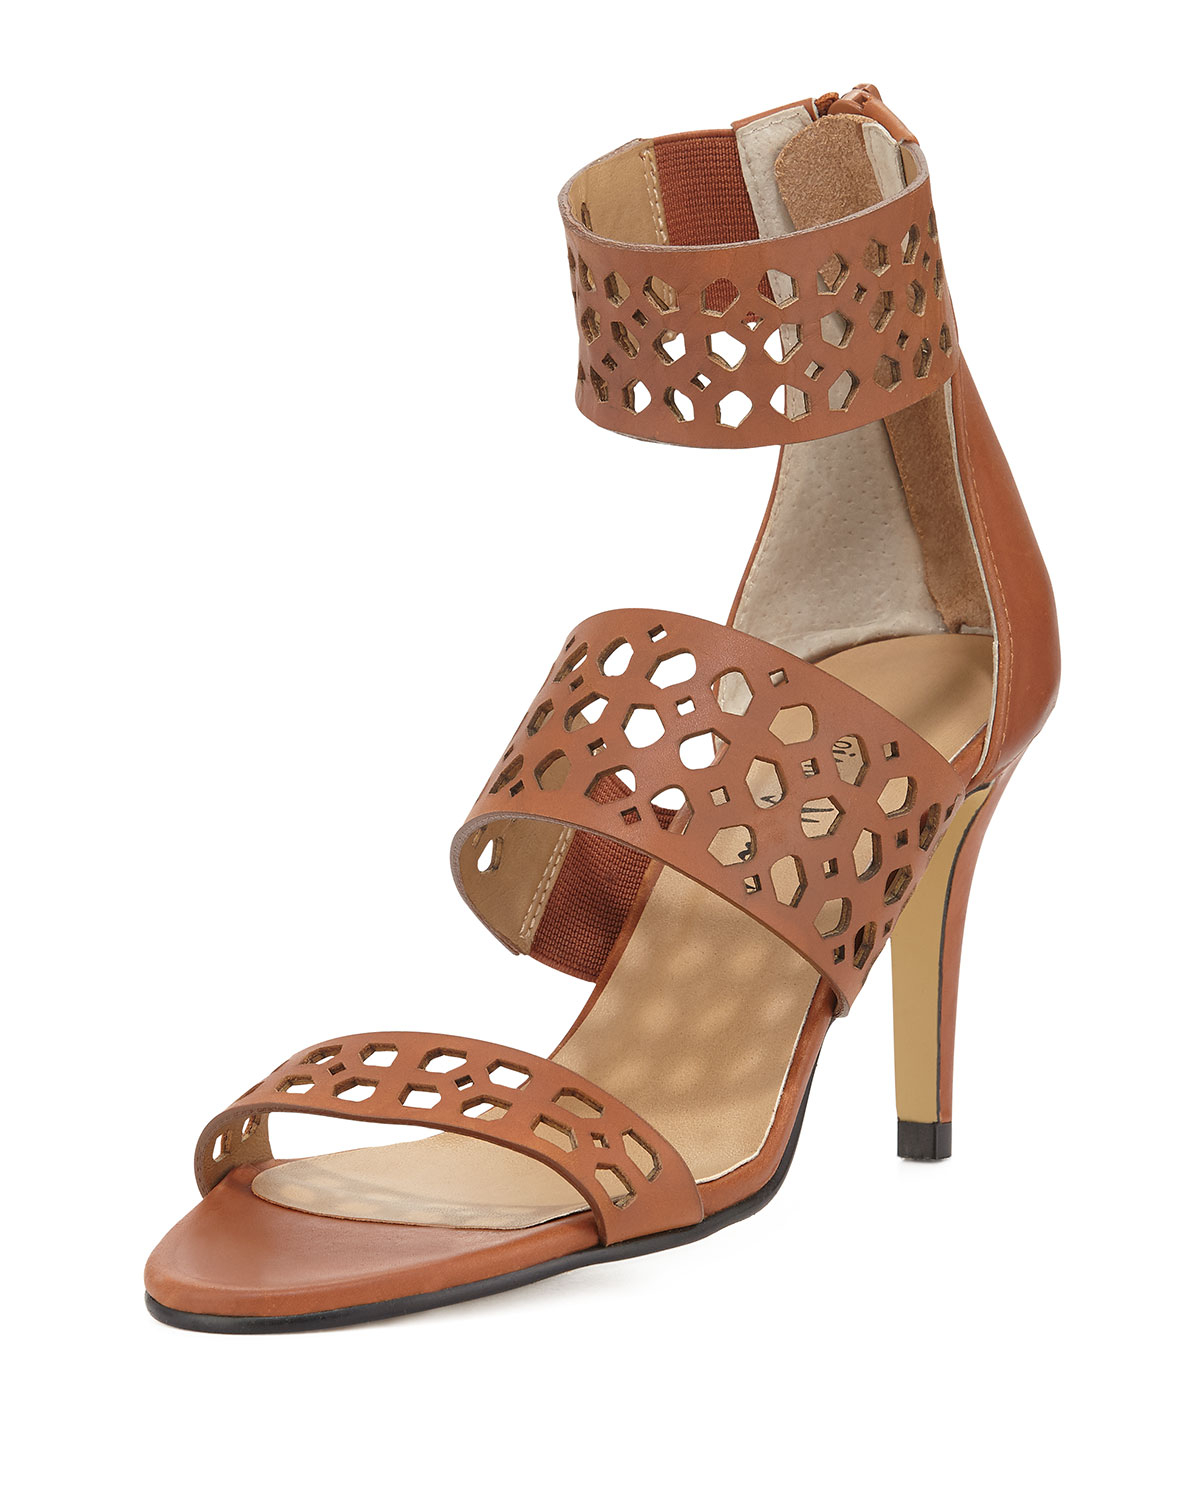 Lyst - Neiman Marcus Elicia Banded High-heel Sandal in Black